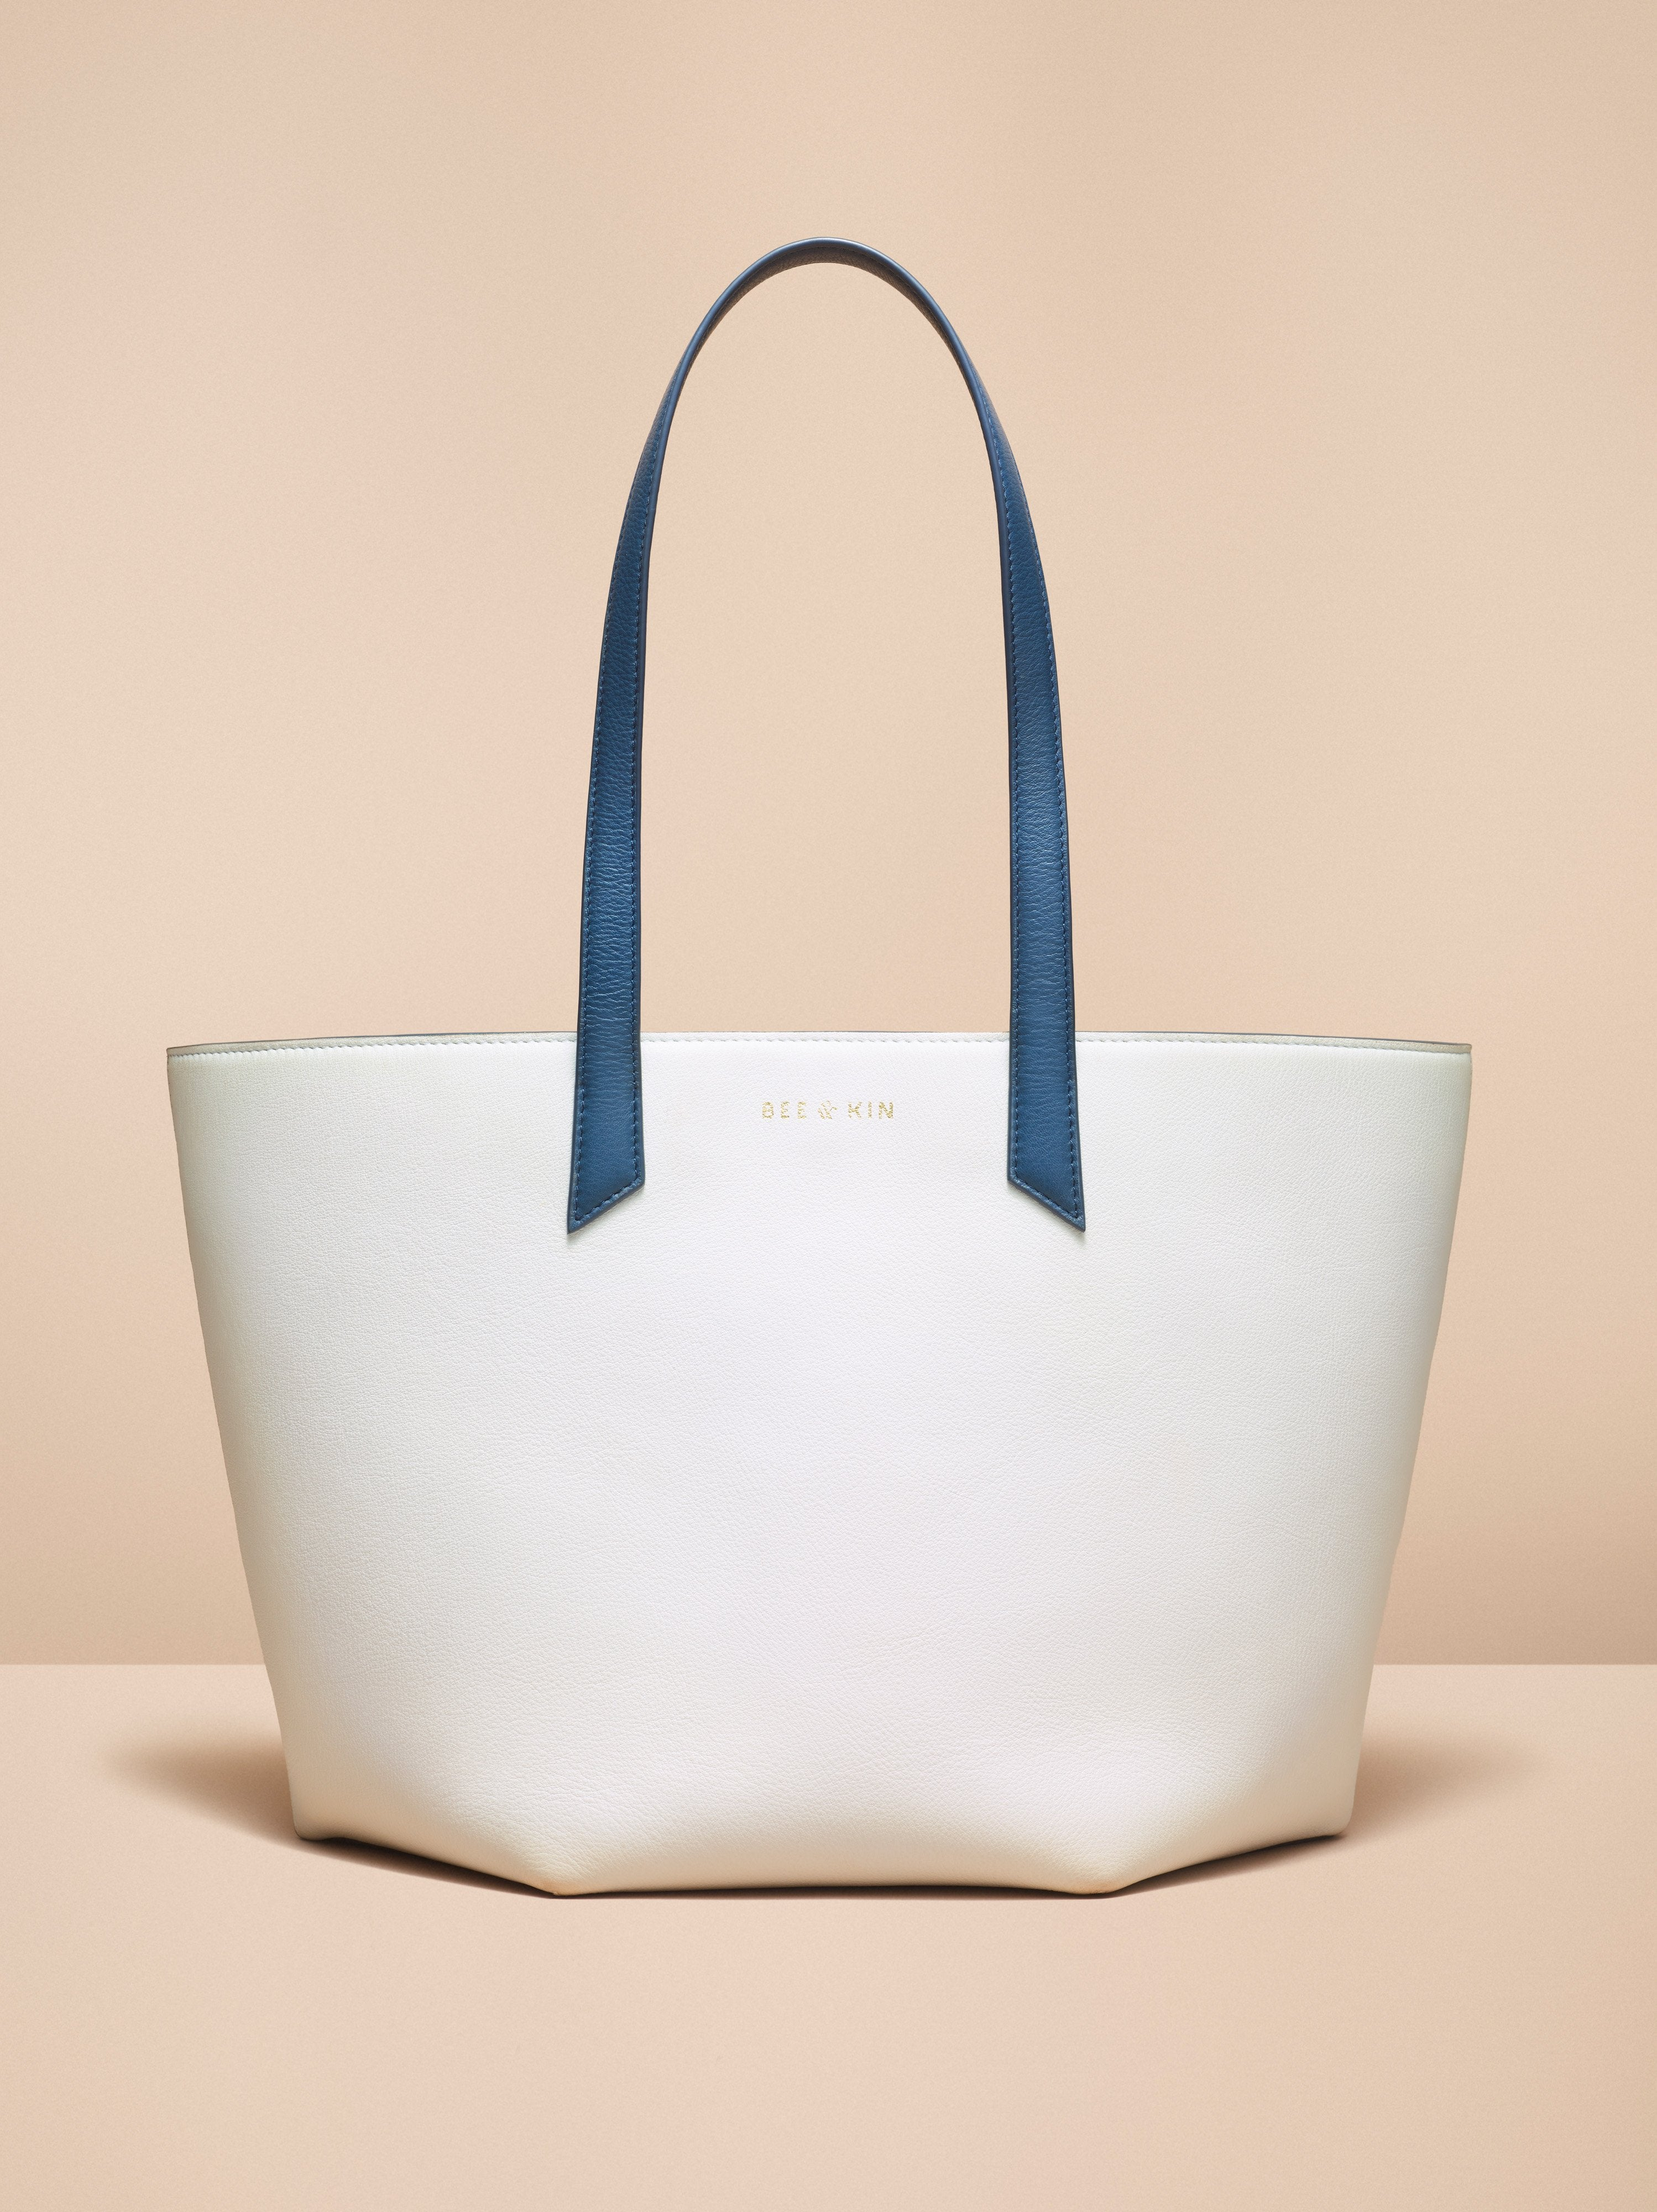 The Expert Carryall Tote